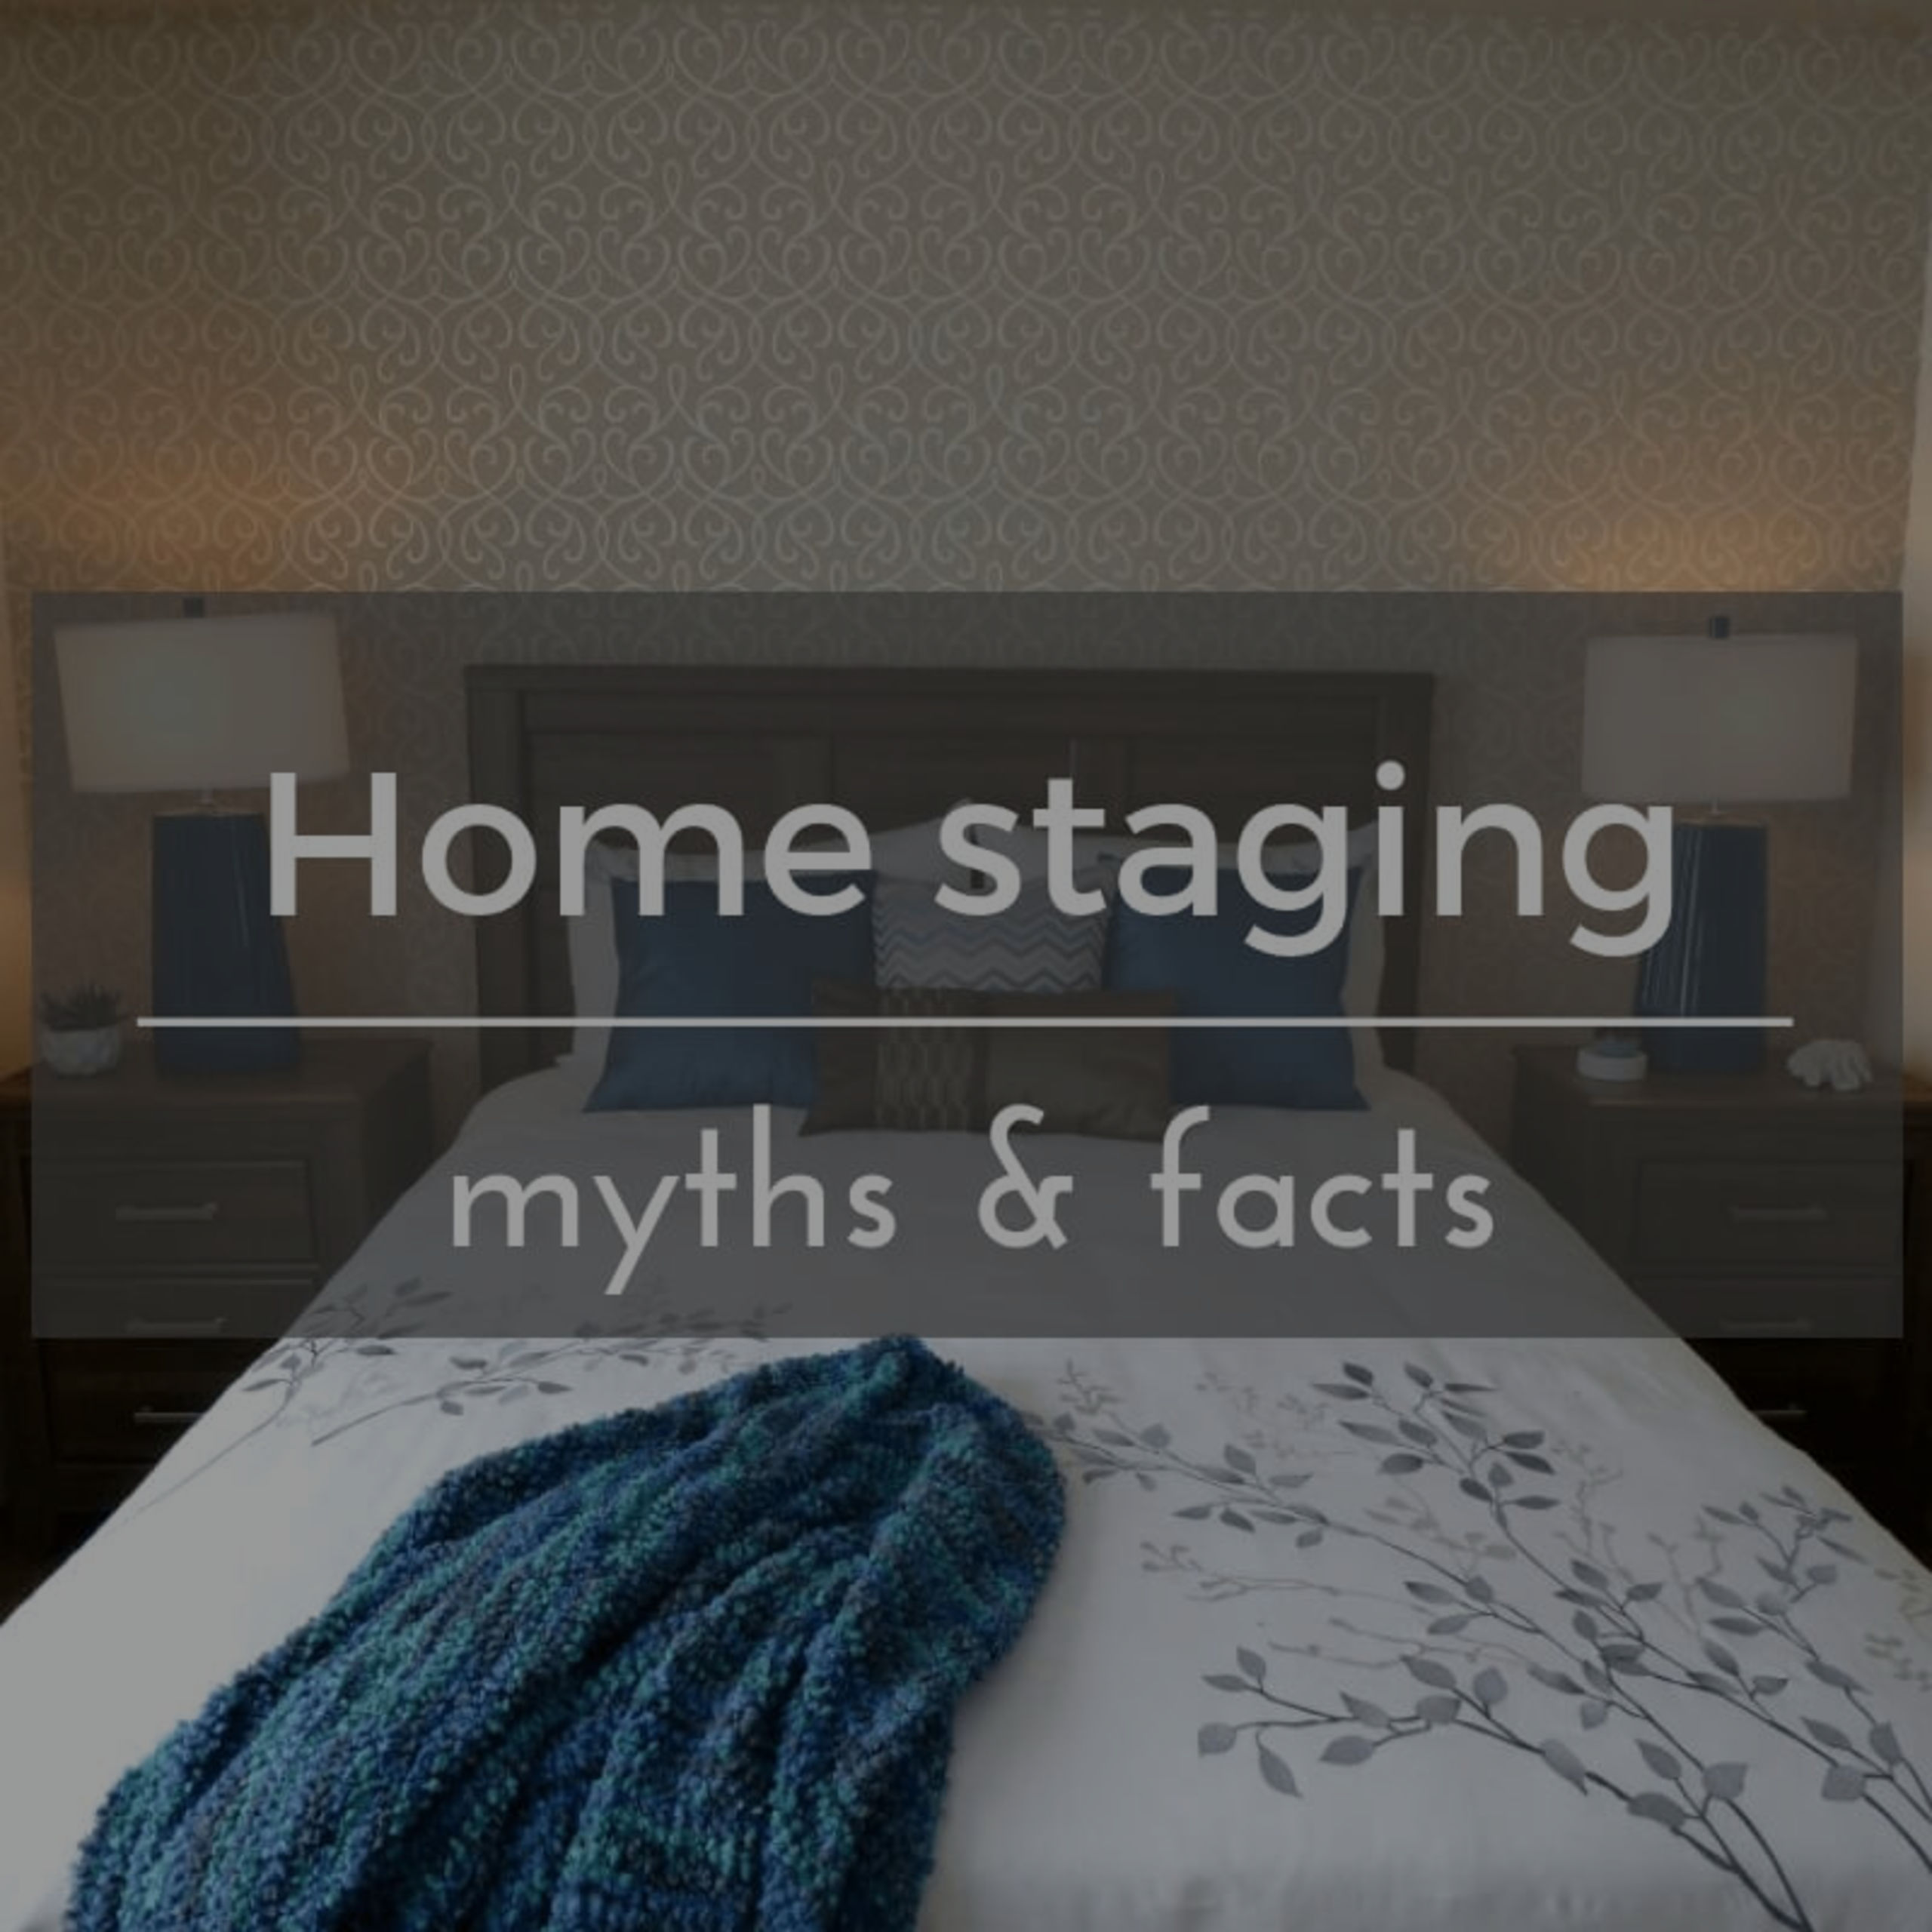 HOME STAGING MYTHS & FACTS